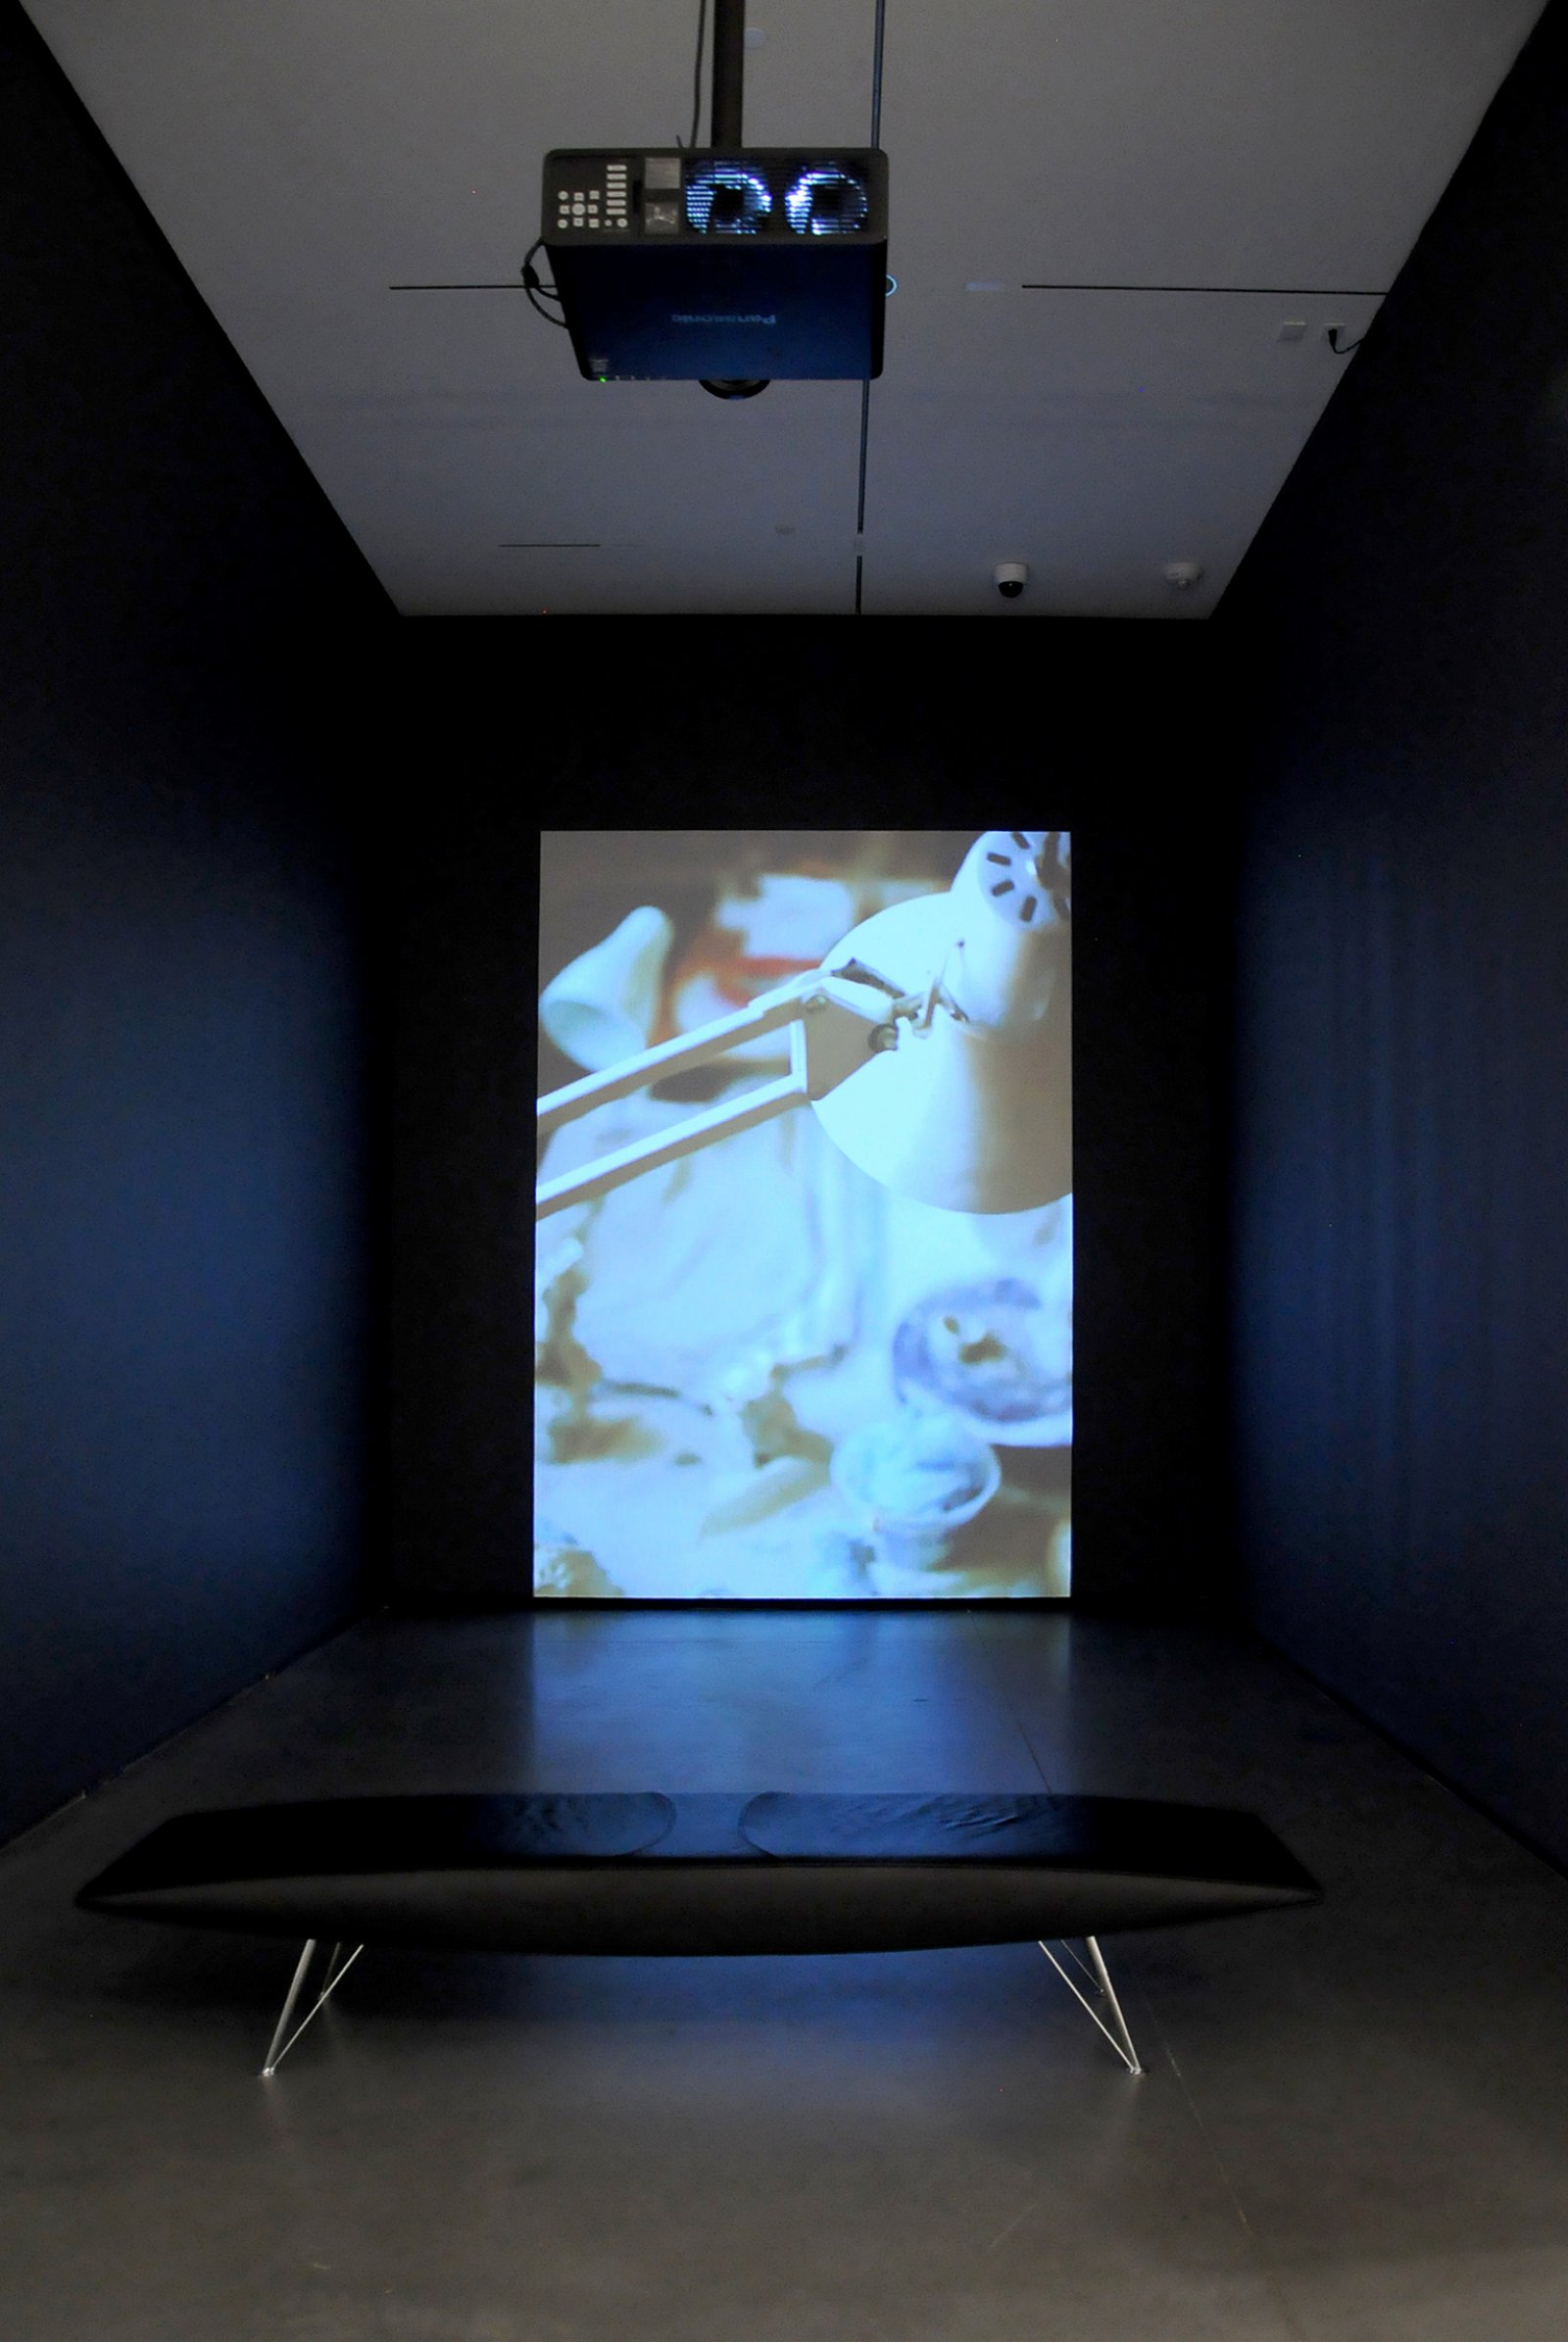 Damian Moppett, The Bells, 2014, video, 20 minutes, 22 seconds. Installation view, Every Story Has Two Sides, Art Gallery of Alberta, Edmonton, 2016 by Damian Moppett